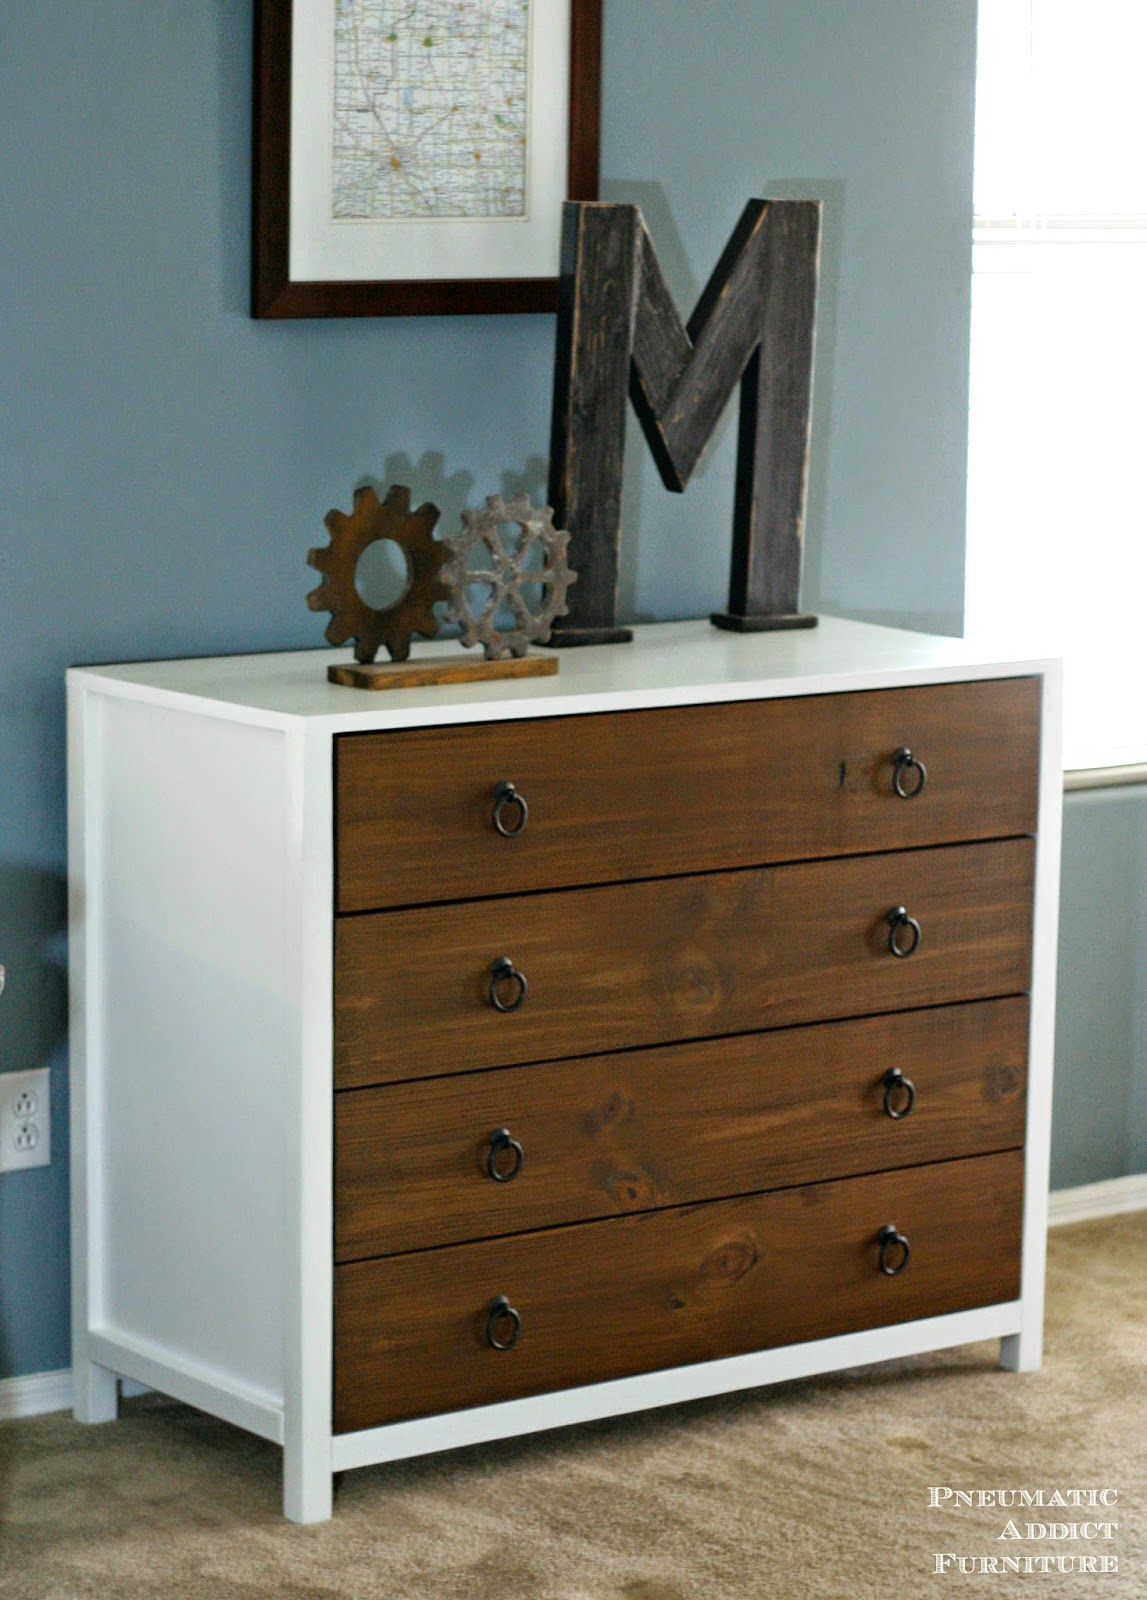 Pneumatic addict jordan dresser knock off - Modern furniture knock offs ...